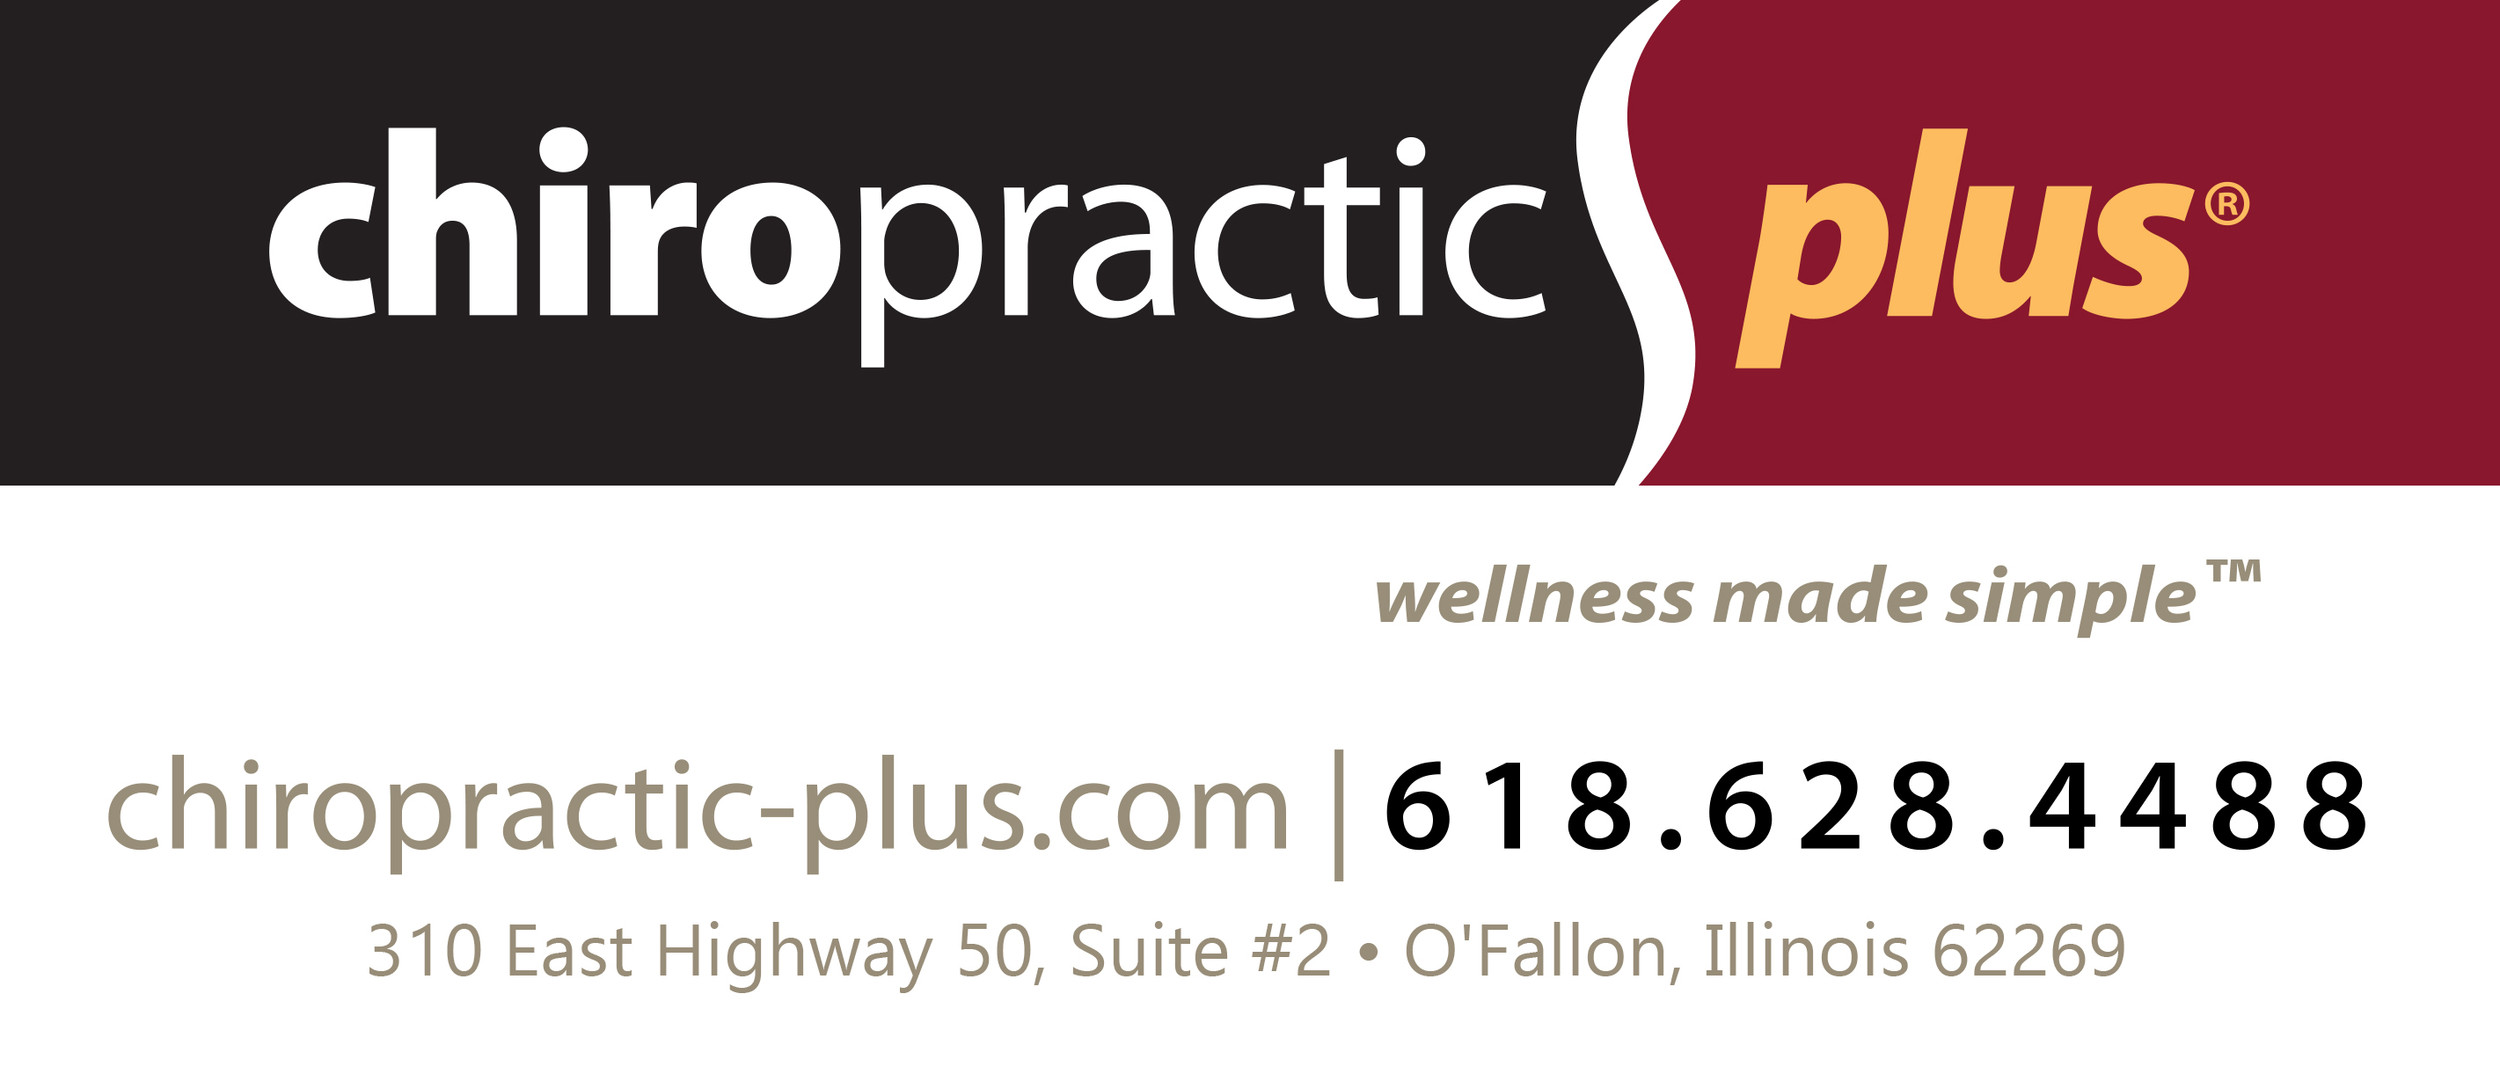 About Our Chiropractor Near Me O'Fallon IL | 618-628-4488